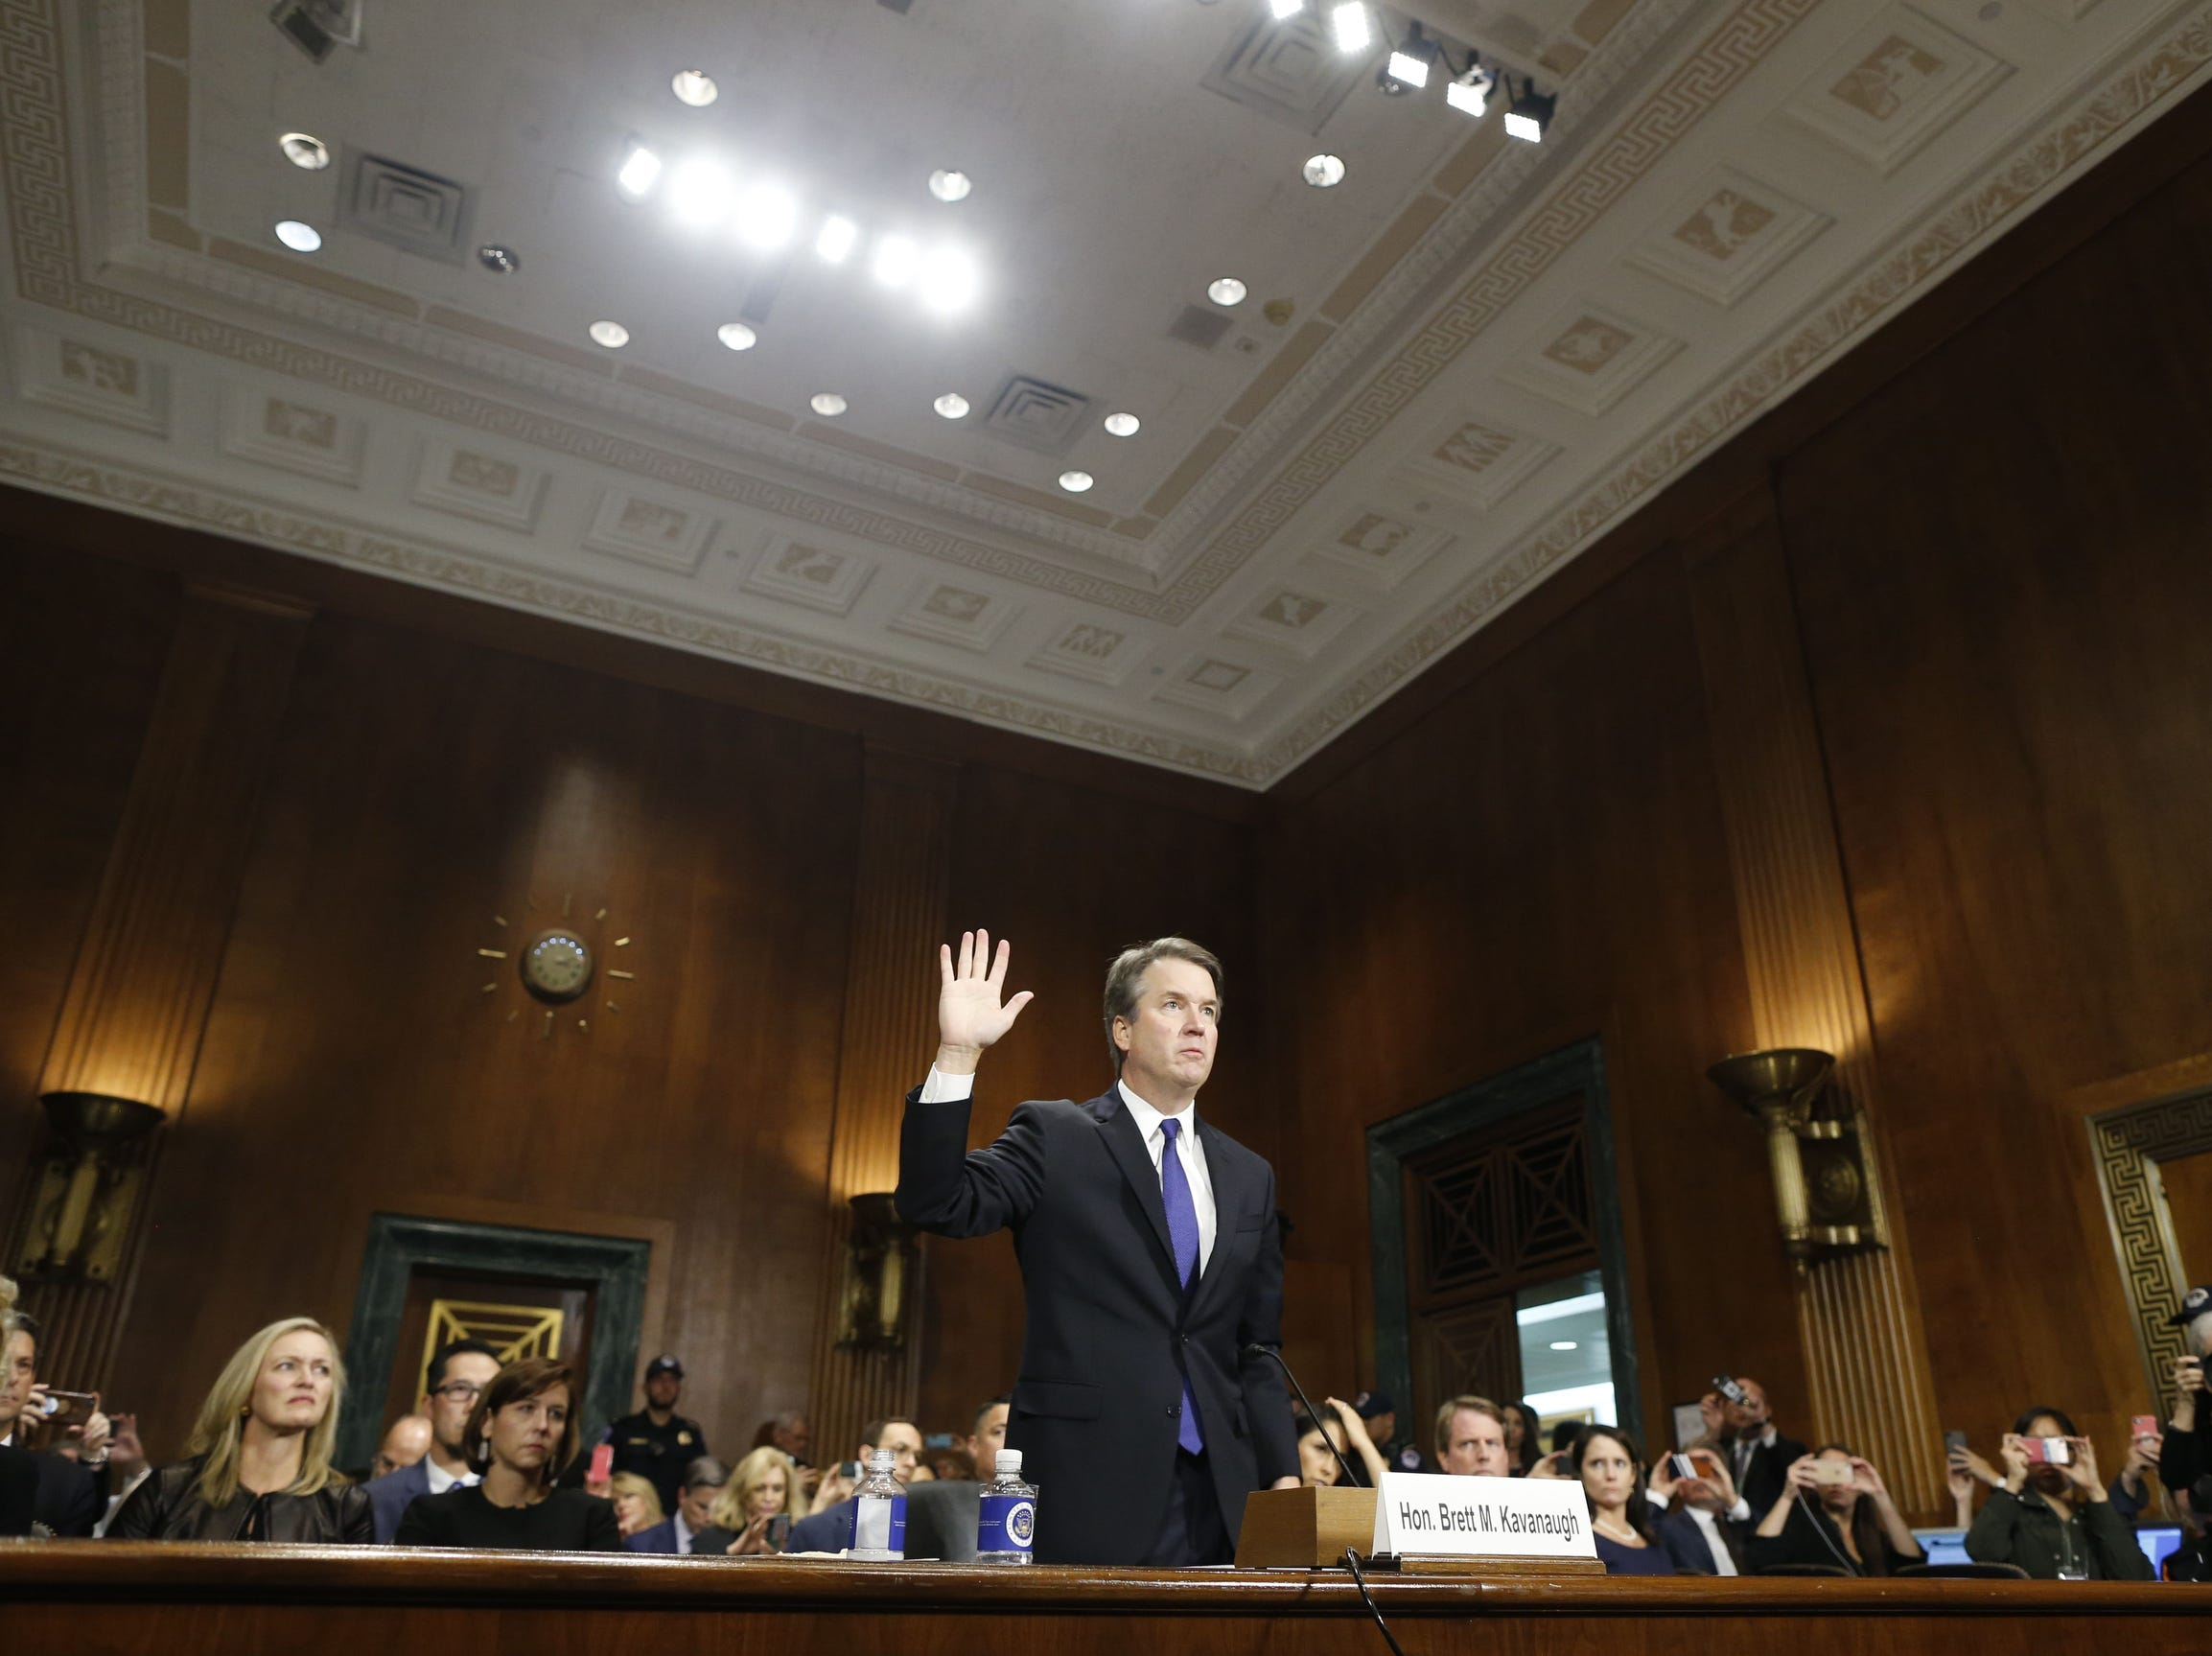 US Supreme Court nominee Judge Brett Kavanaugh is sworn in before testifying at the Senate Judiciary Committee on Capitol Hill, Thursday.